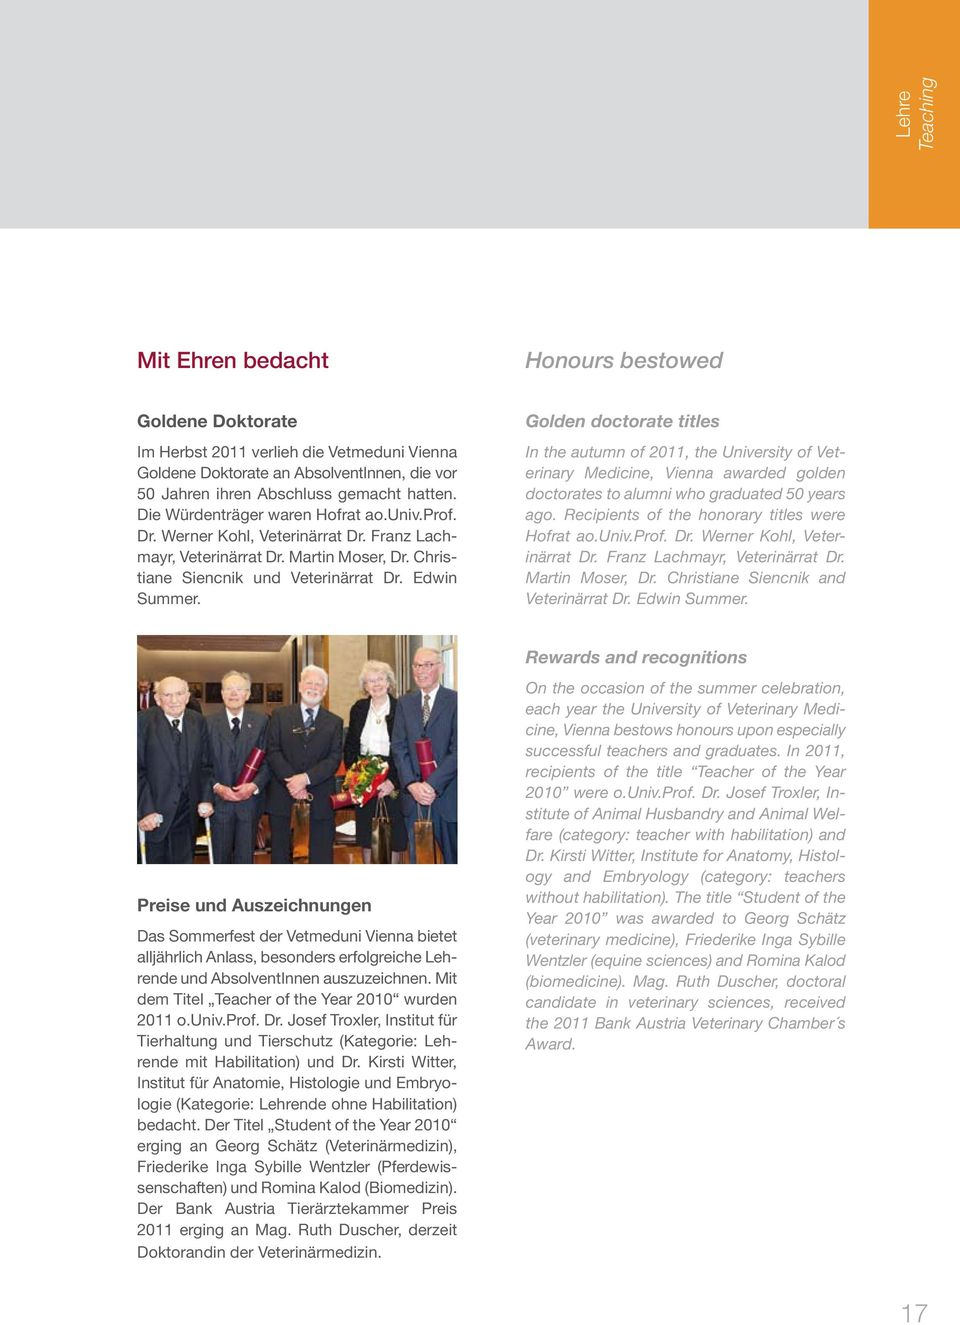 Golden doctorate titles In the autumn of 2011, the University of Veterinary Medicine, Vienna awarded golden doctorates to alumni who graduated 50 years ago.